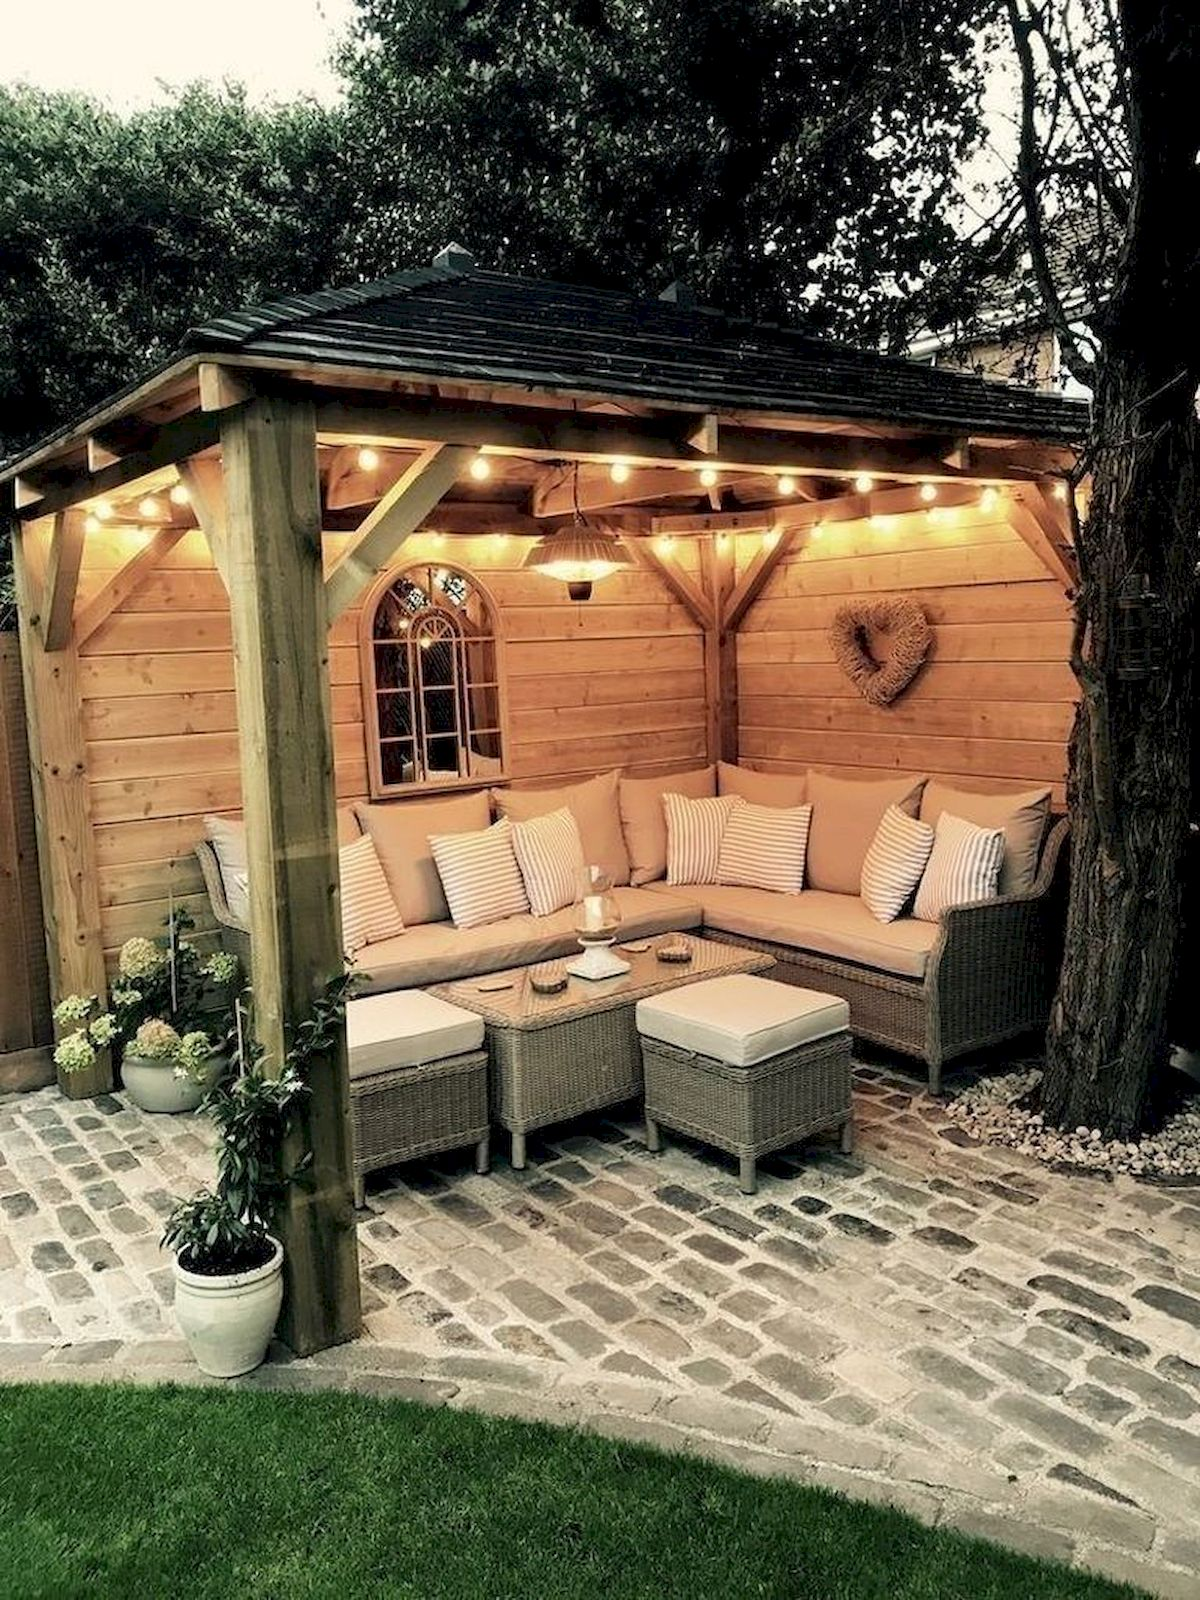 30 Best Small Backyard Patio Ideas (5) - Googodecor on Best Backyard Patio Designs id=54700